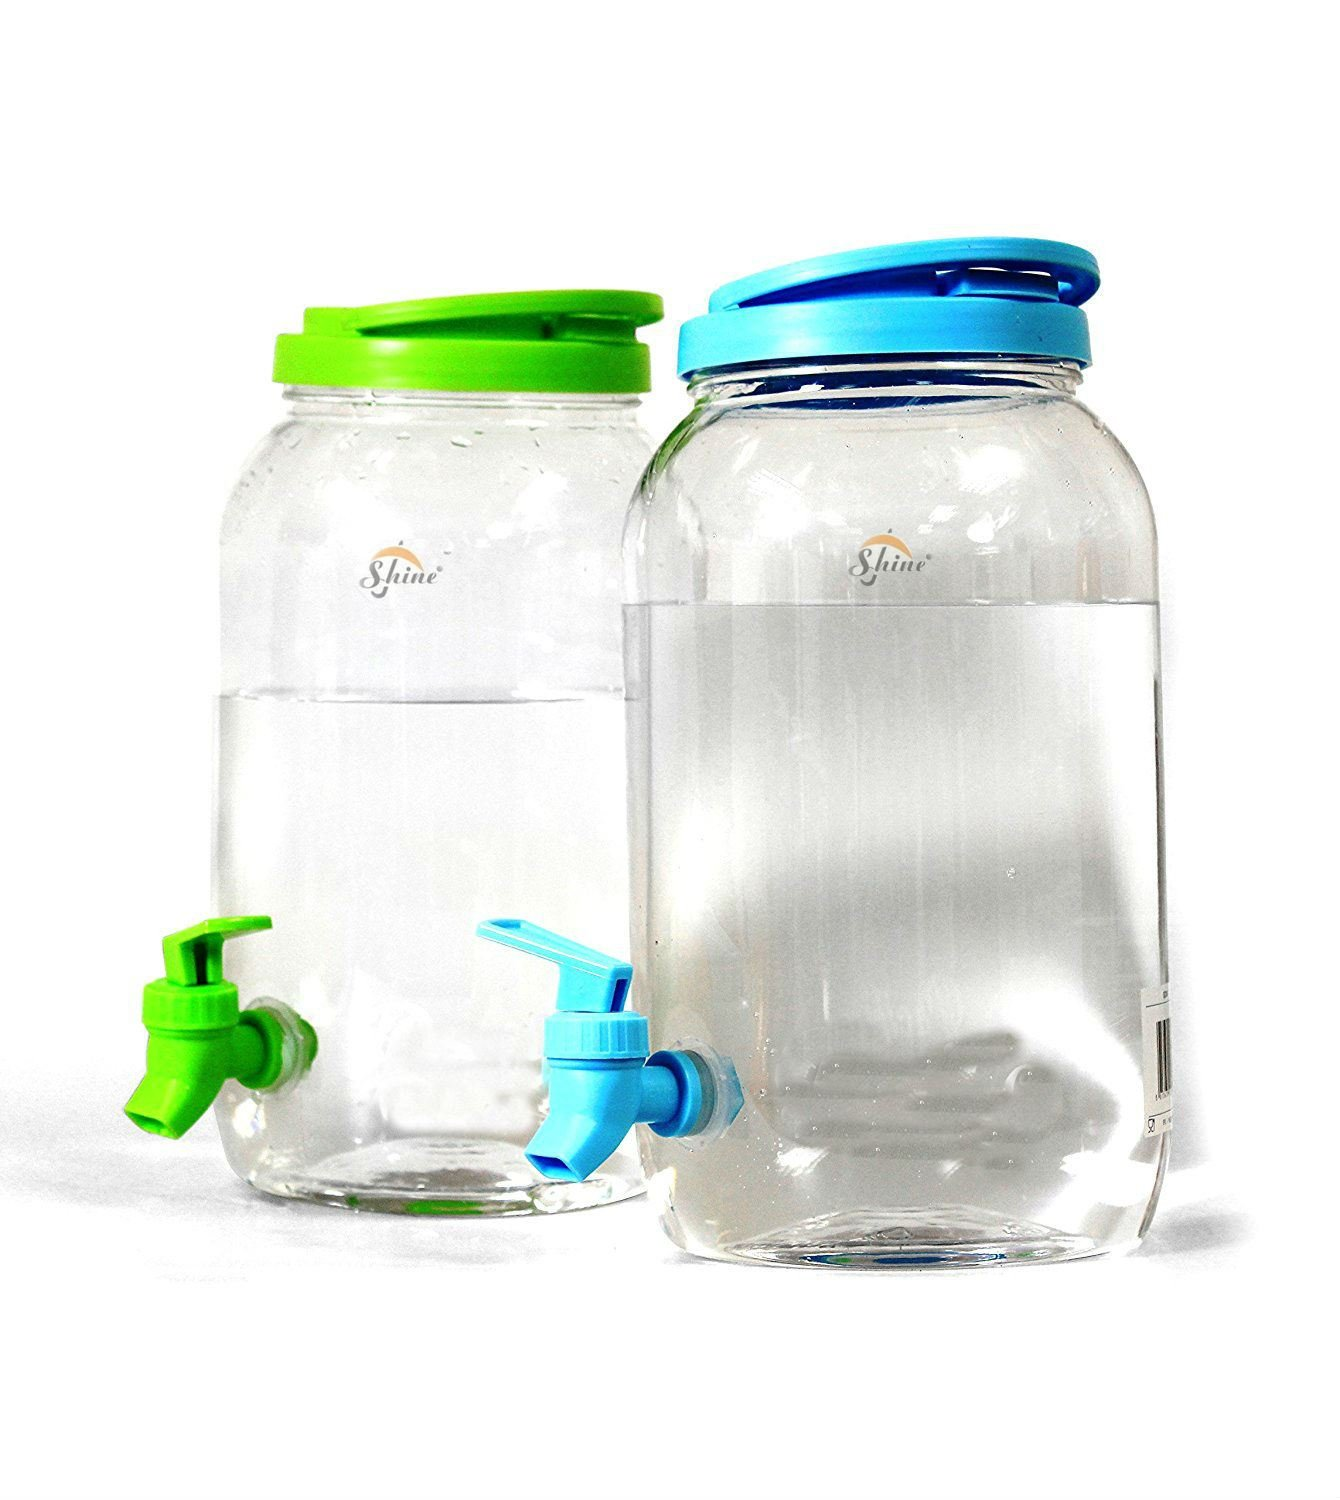 6L DOUBLE DRINKS DISPENSER- Includes 2X 3L PLASTIC JUG MASON JAR HOME PARTY PICNIC GARDEN BAR B Q s&s